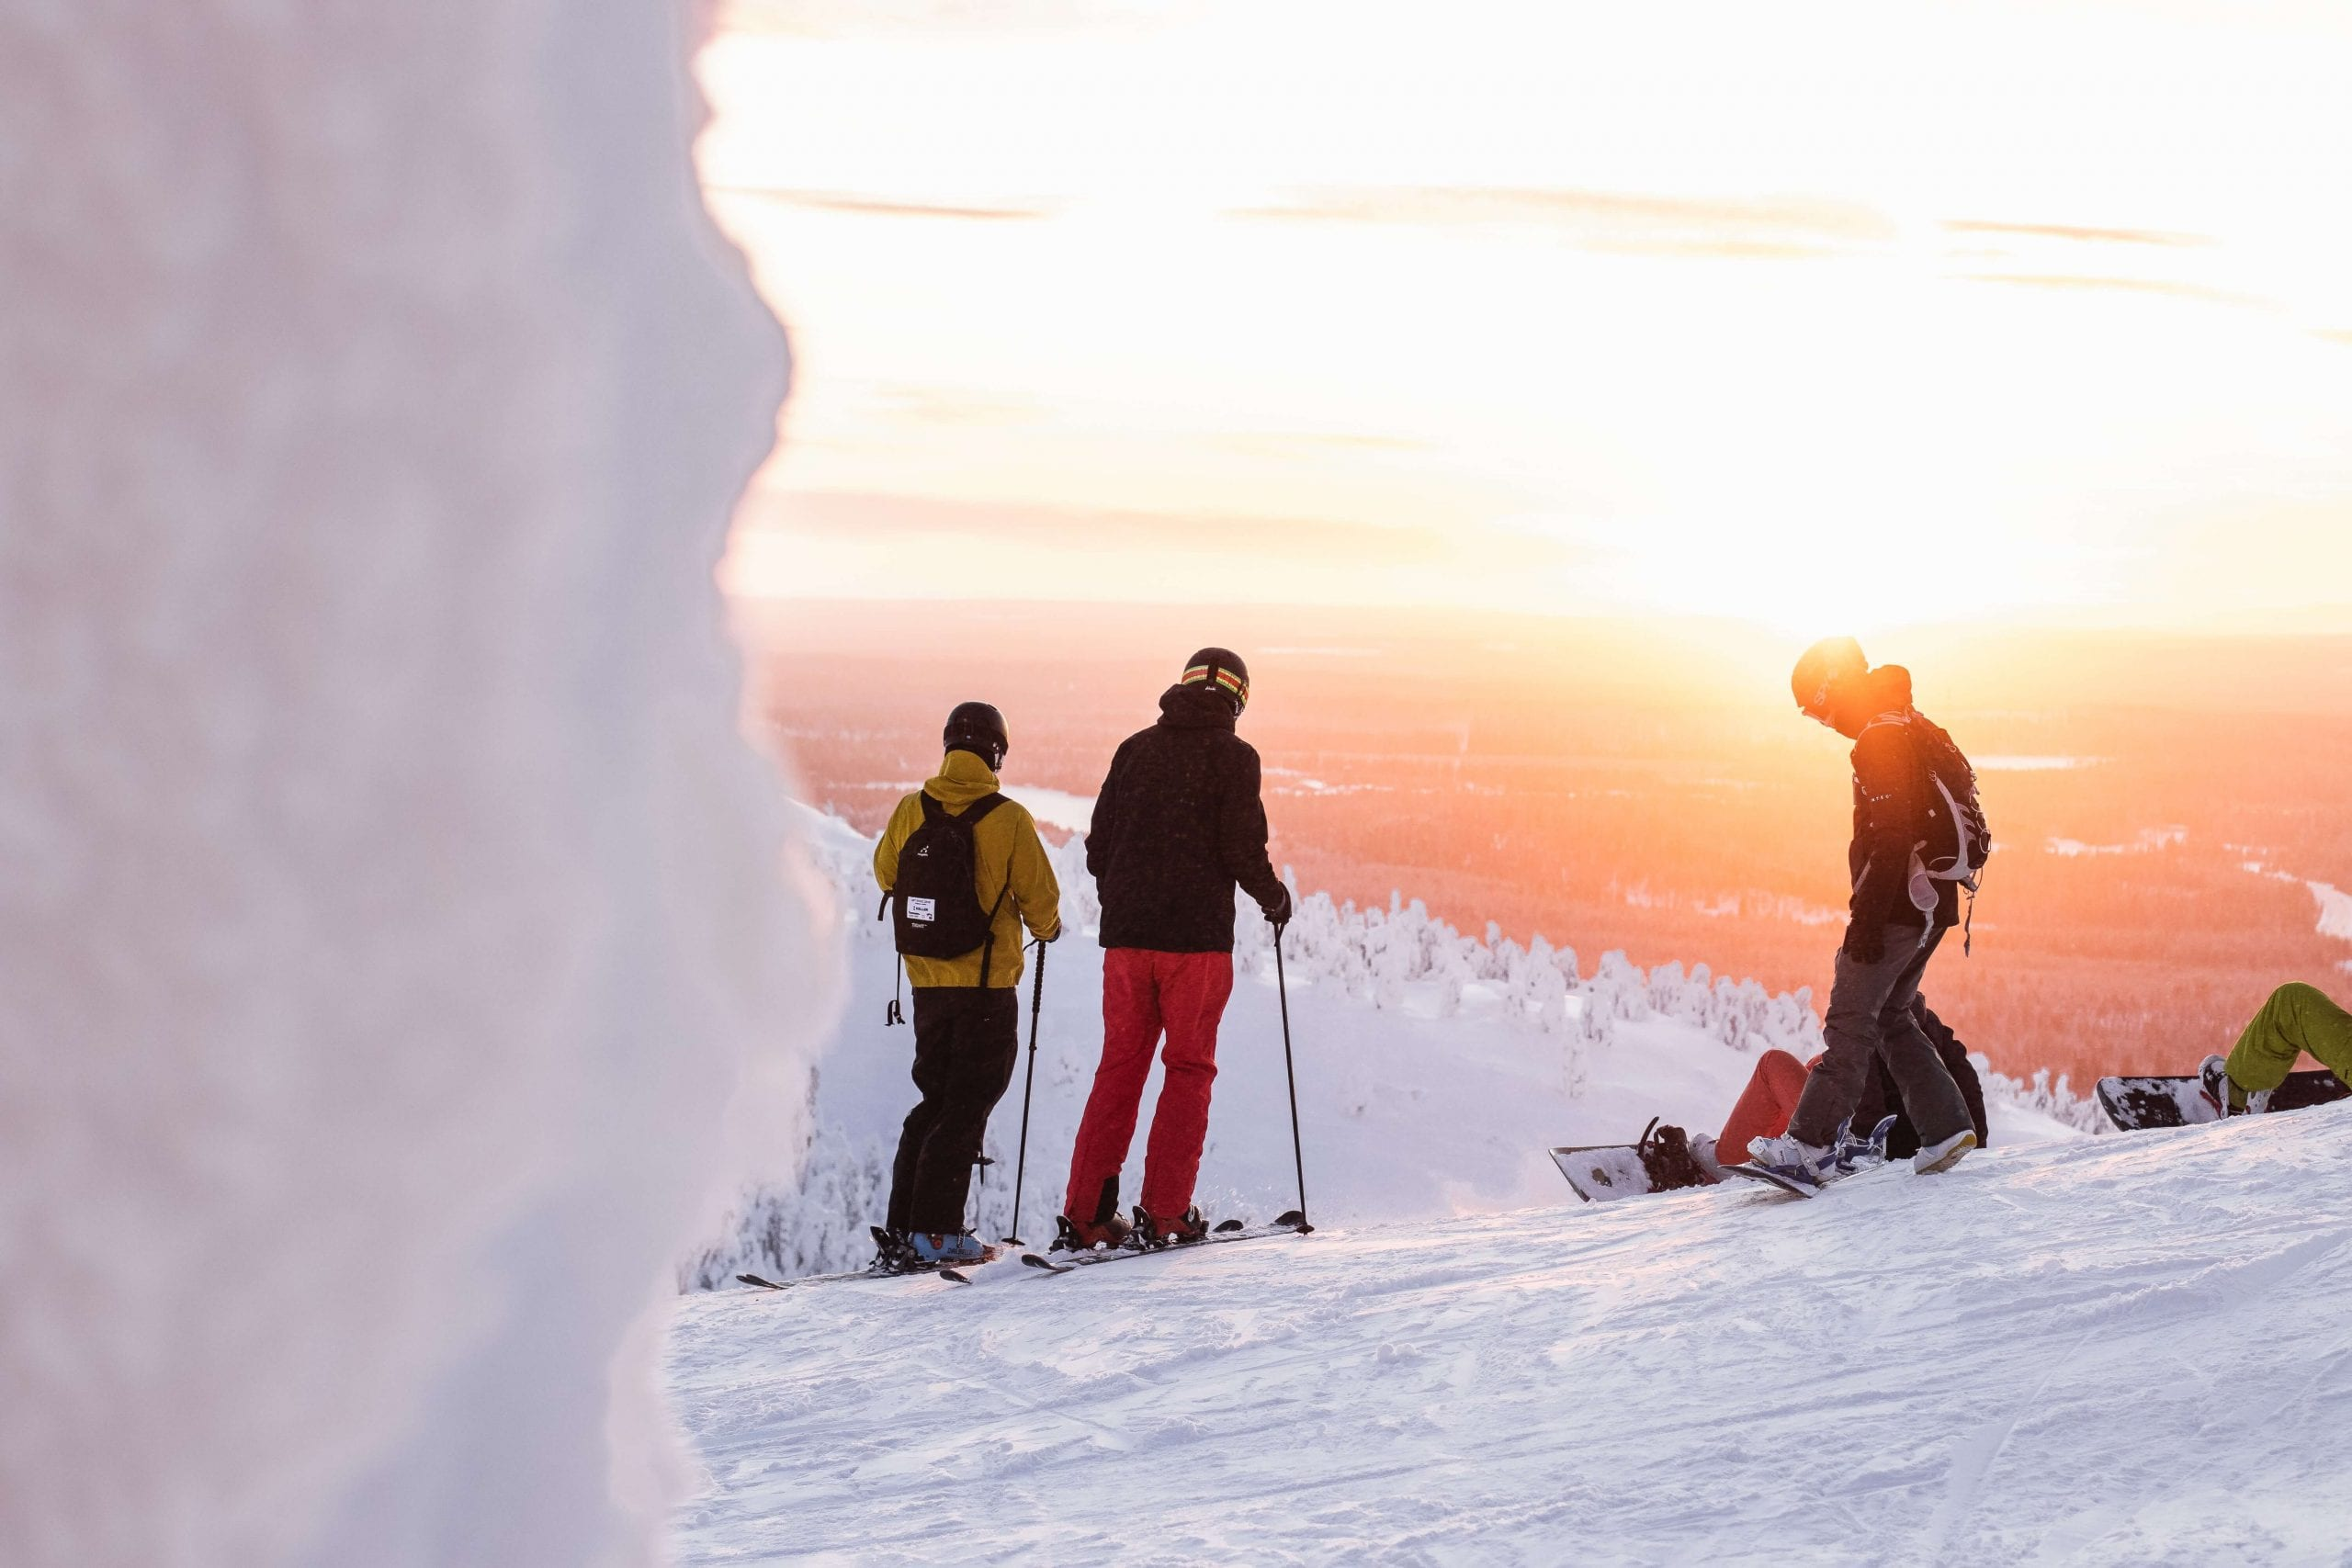 Skiers at the top of a mountain at sunset